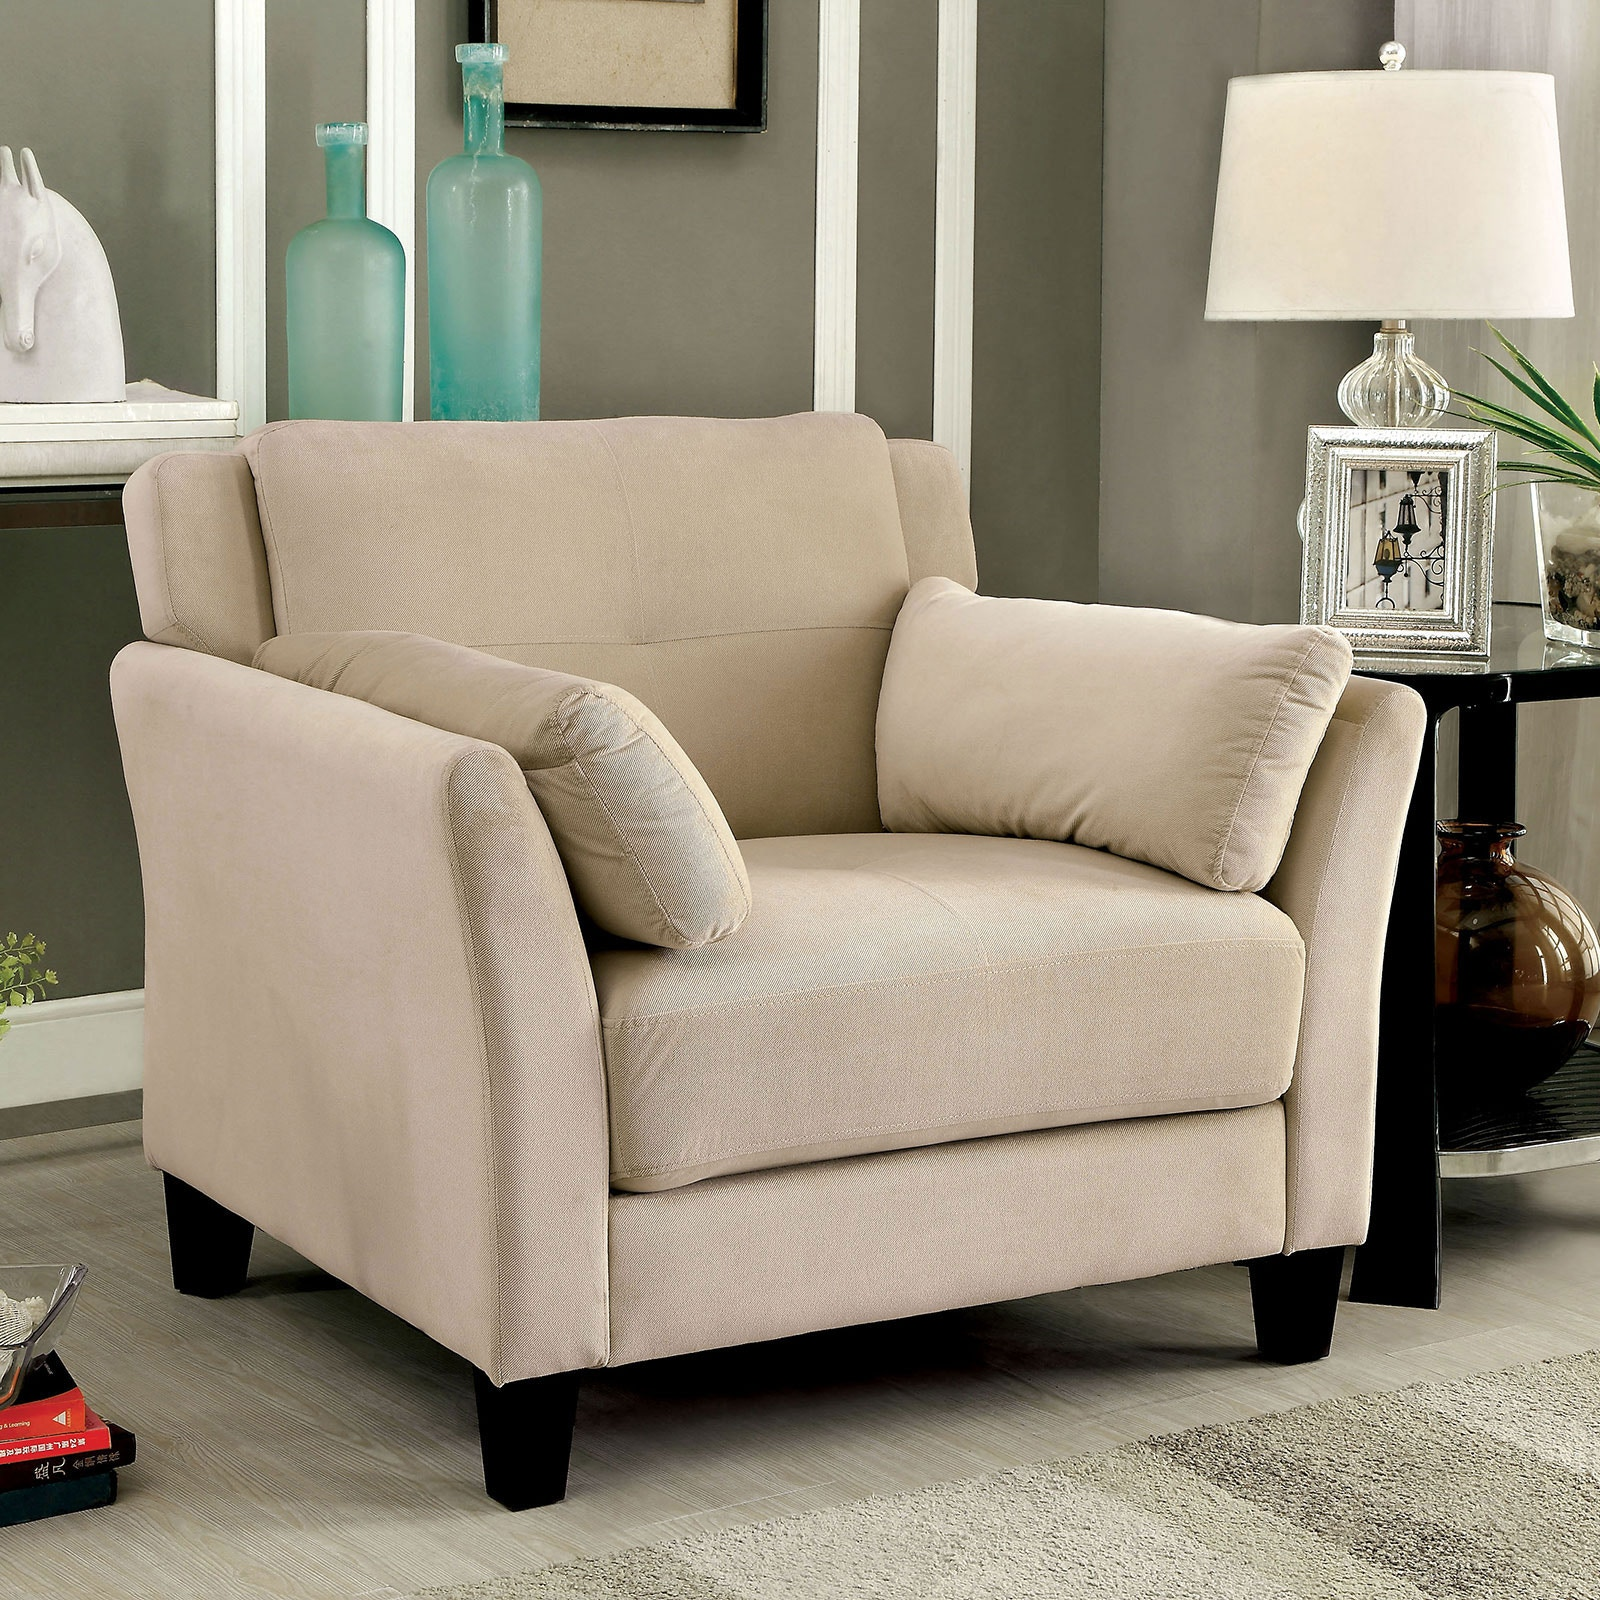 Add Charm Living Room Sets Furniture of America Living Room Chair, Beige CM6716BG-CH-PK at Kensington Furniture  and Mattress. Add some modern charm ...